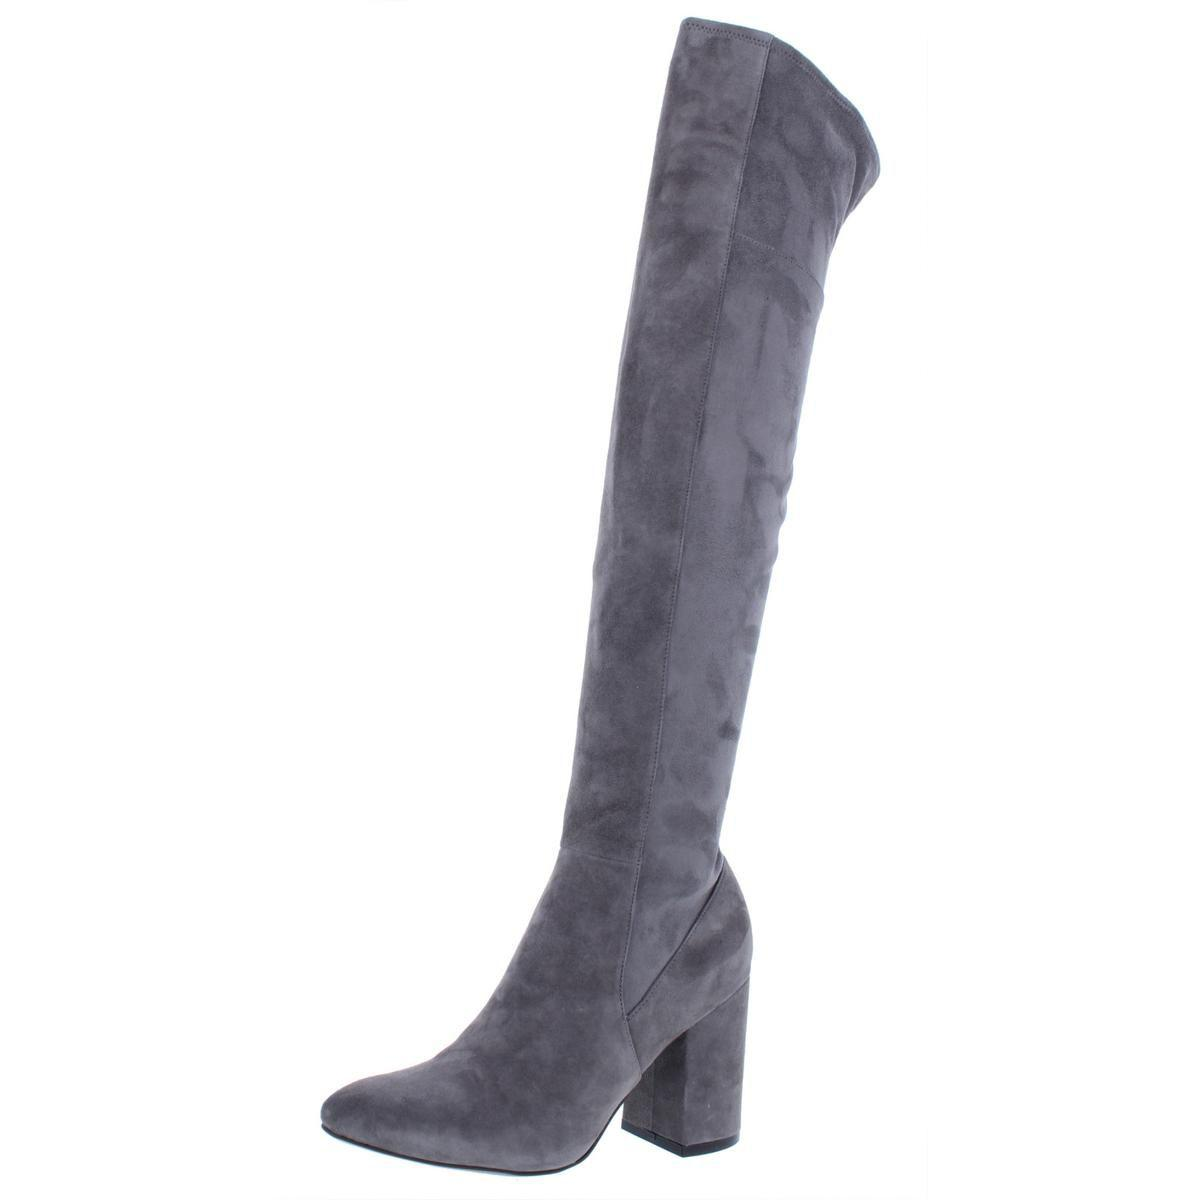 cfa113fe782 Lyst - Cole Haan Womens Darla Suede Fashion Over-the-knee Boots in Gray